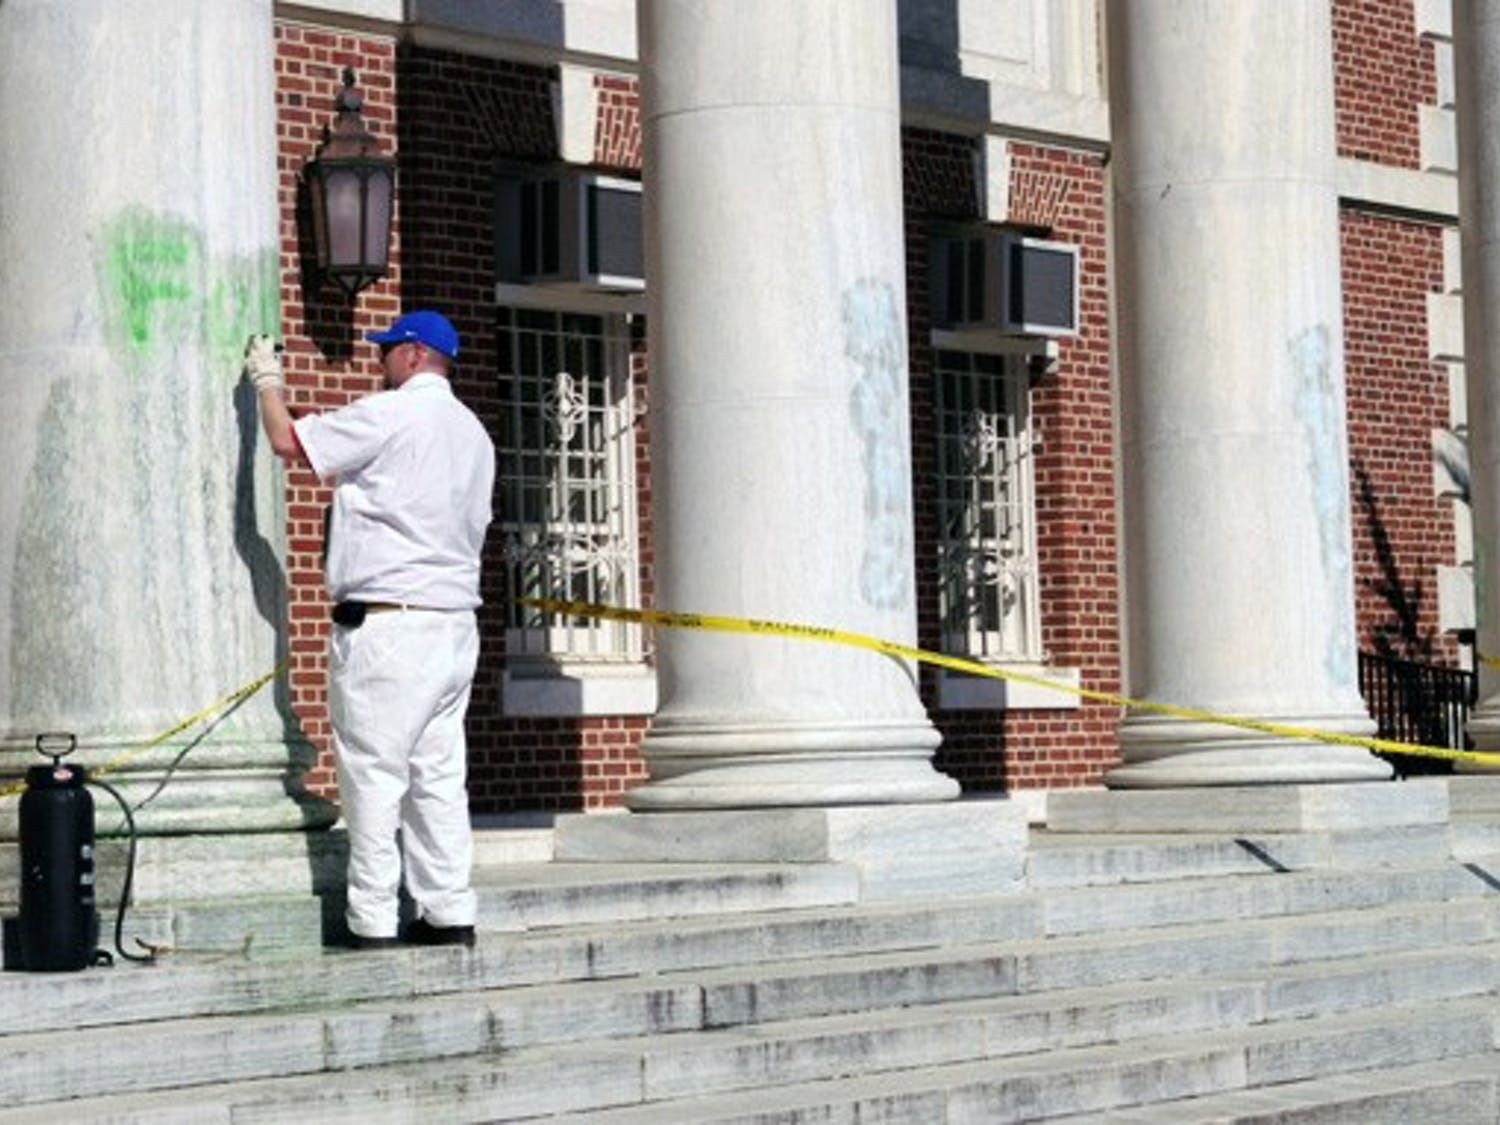 A University staff member cleans up graffiti painted Saturday on the columns of Lilly Library on East Campus. Wilson Residence Hall was similarly vandalized.